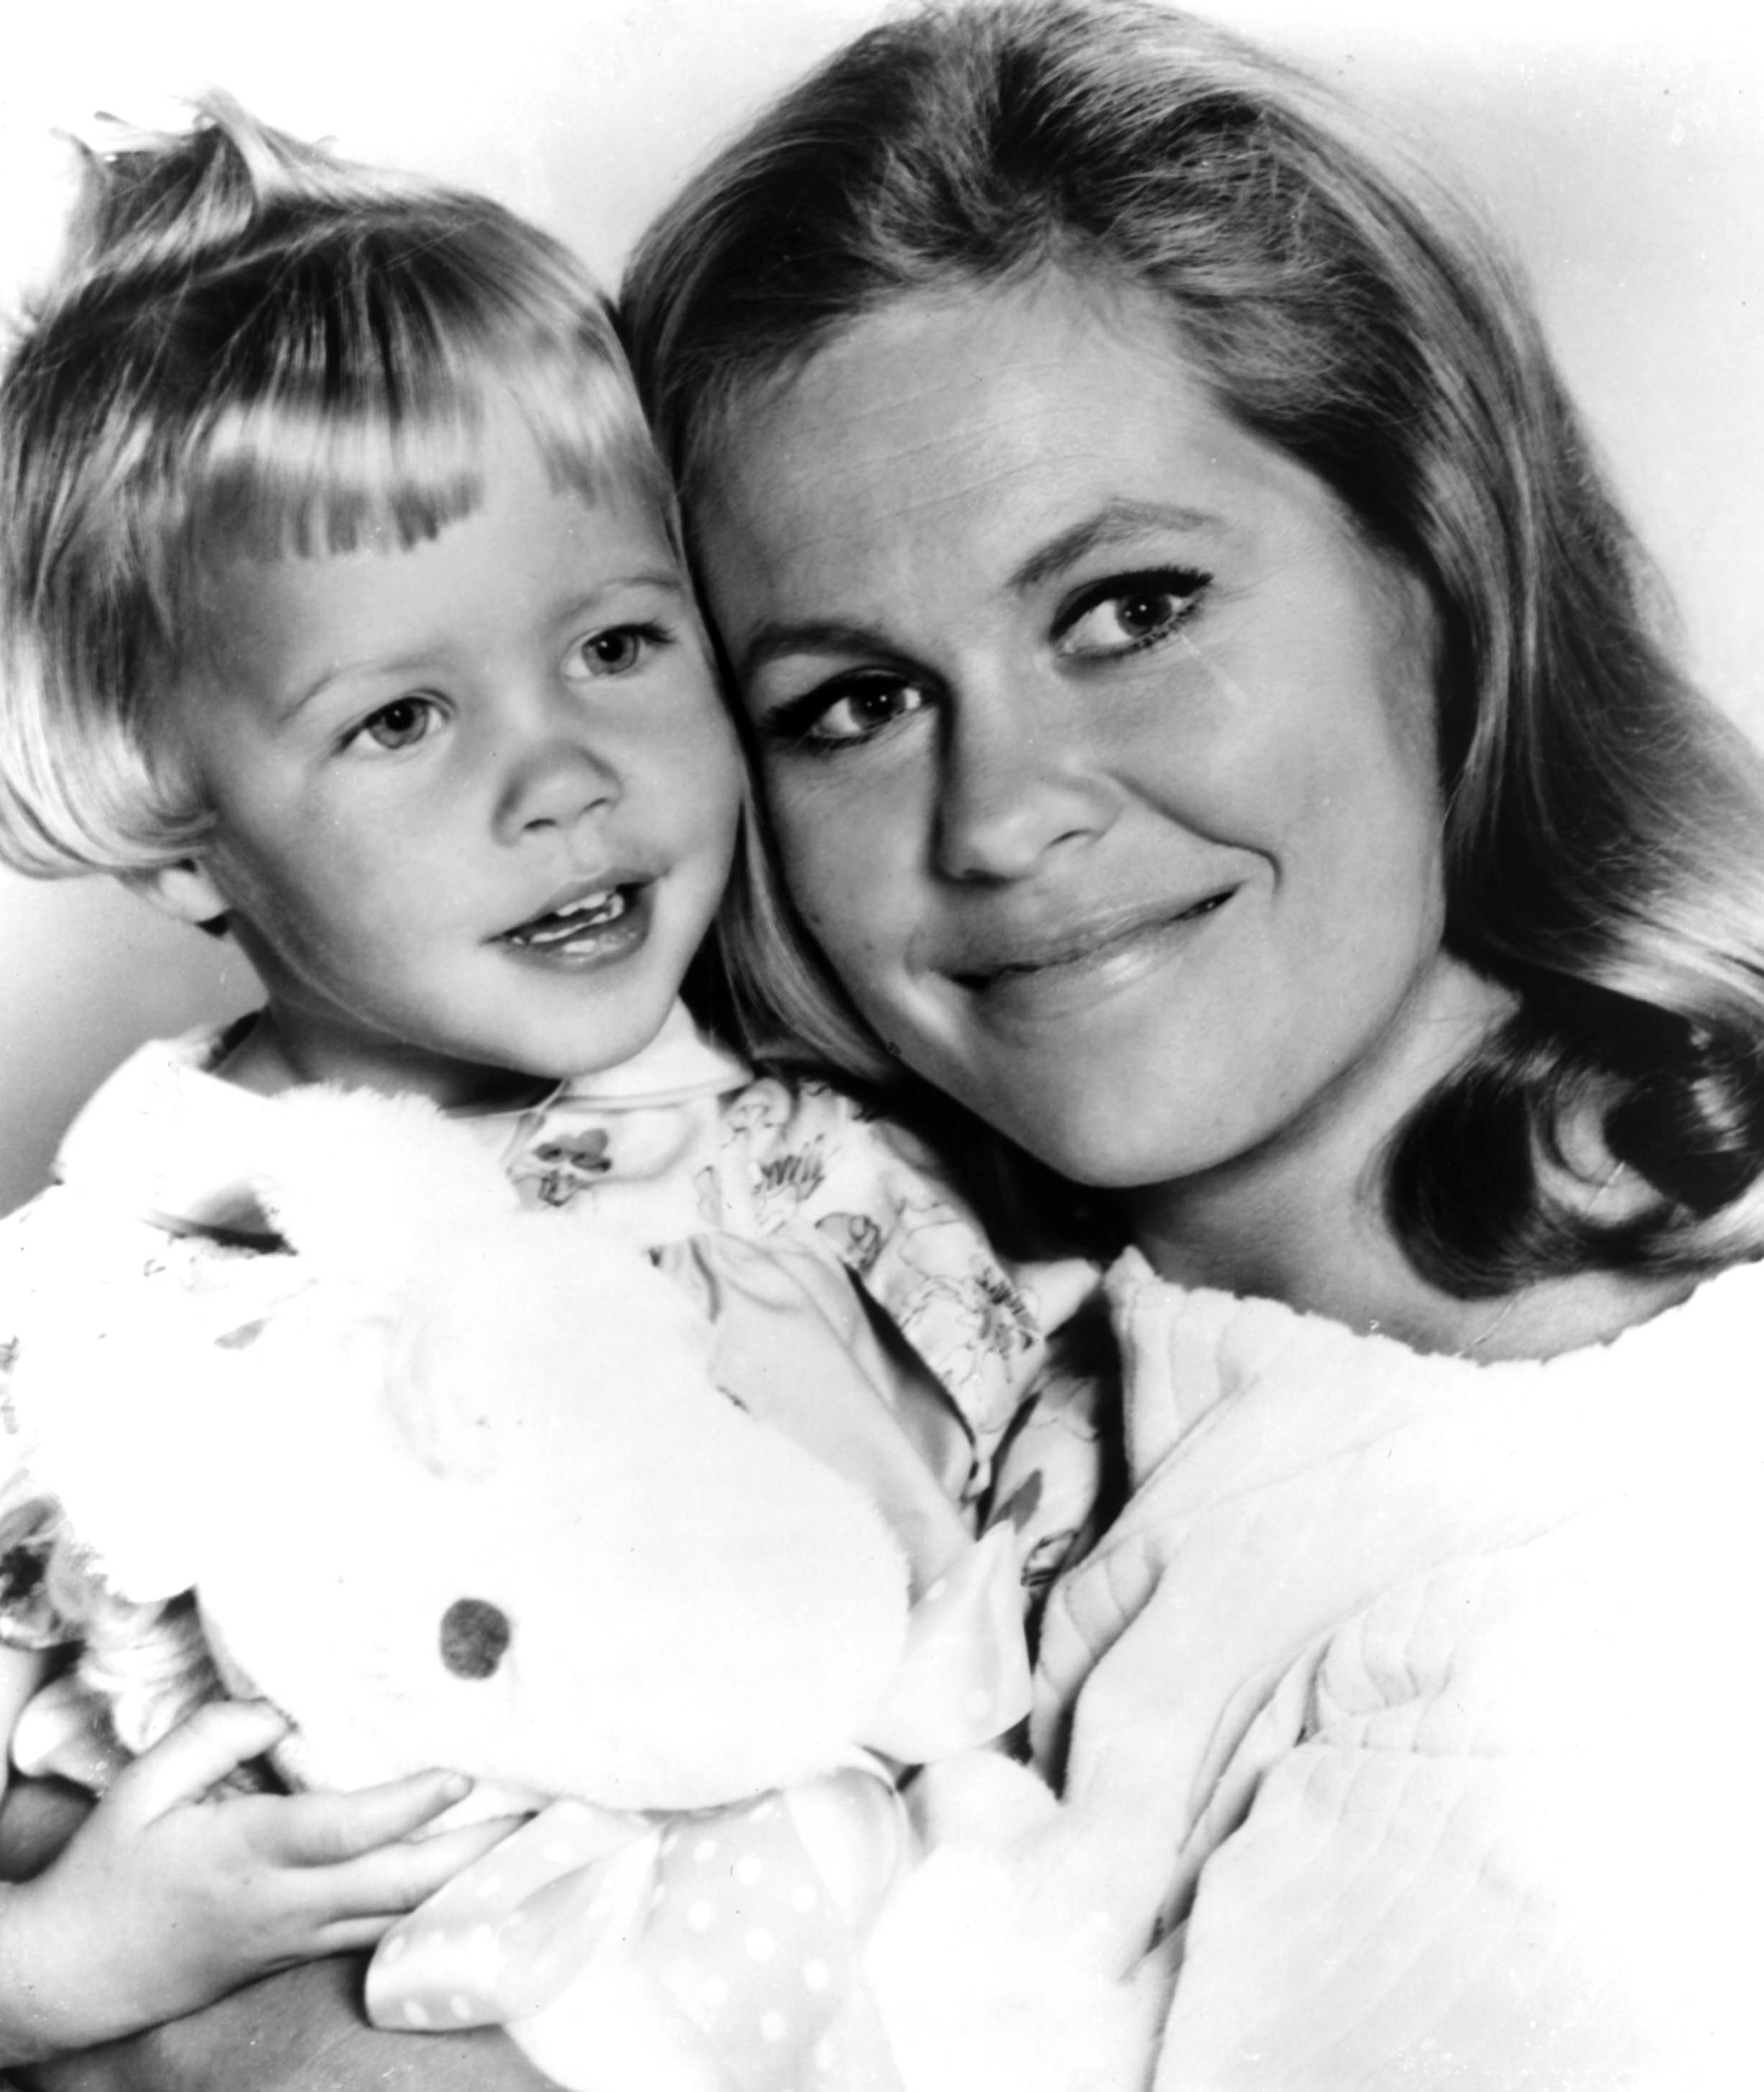 Child stars of the '70s - Where are they now? | Gallery ...